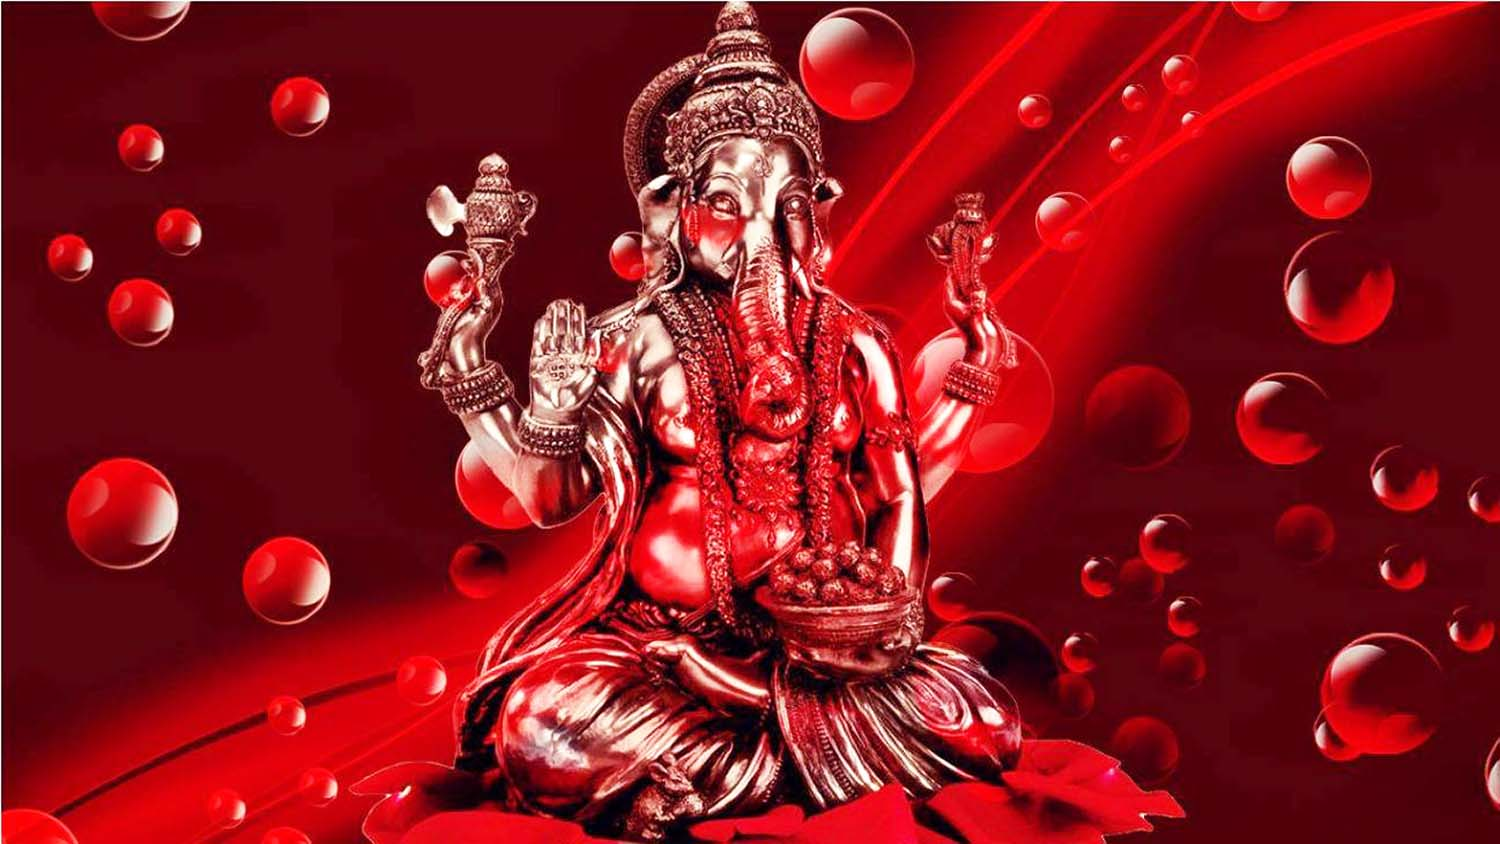 Ganesha picture in Red background!